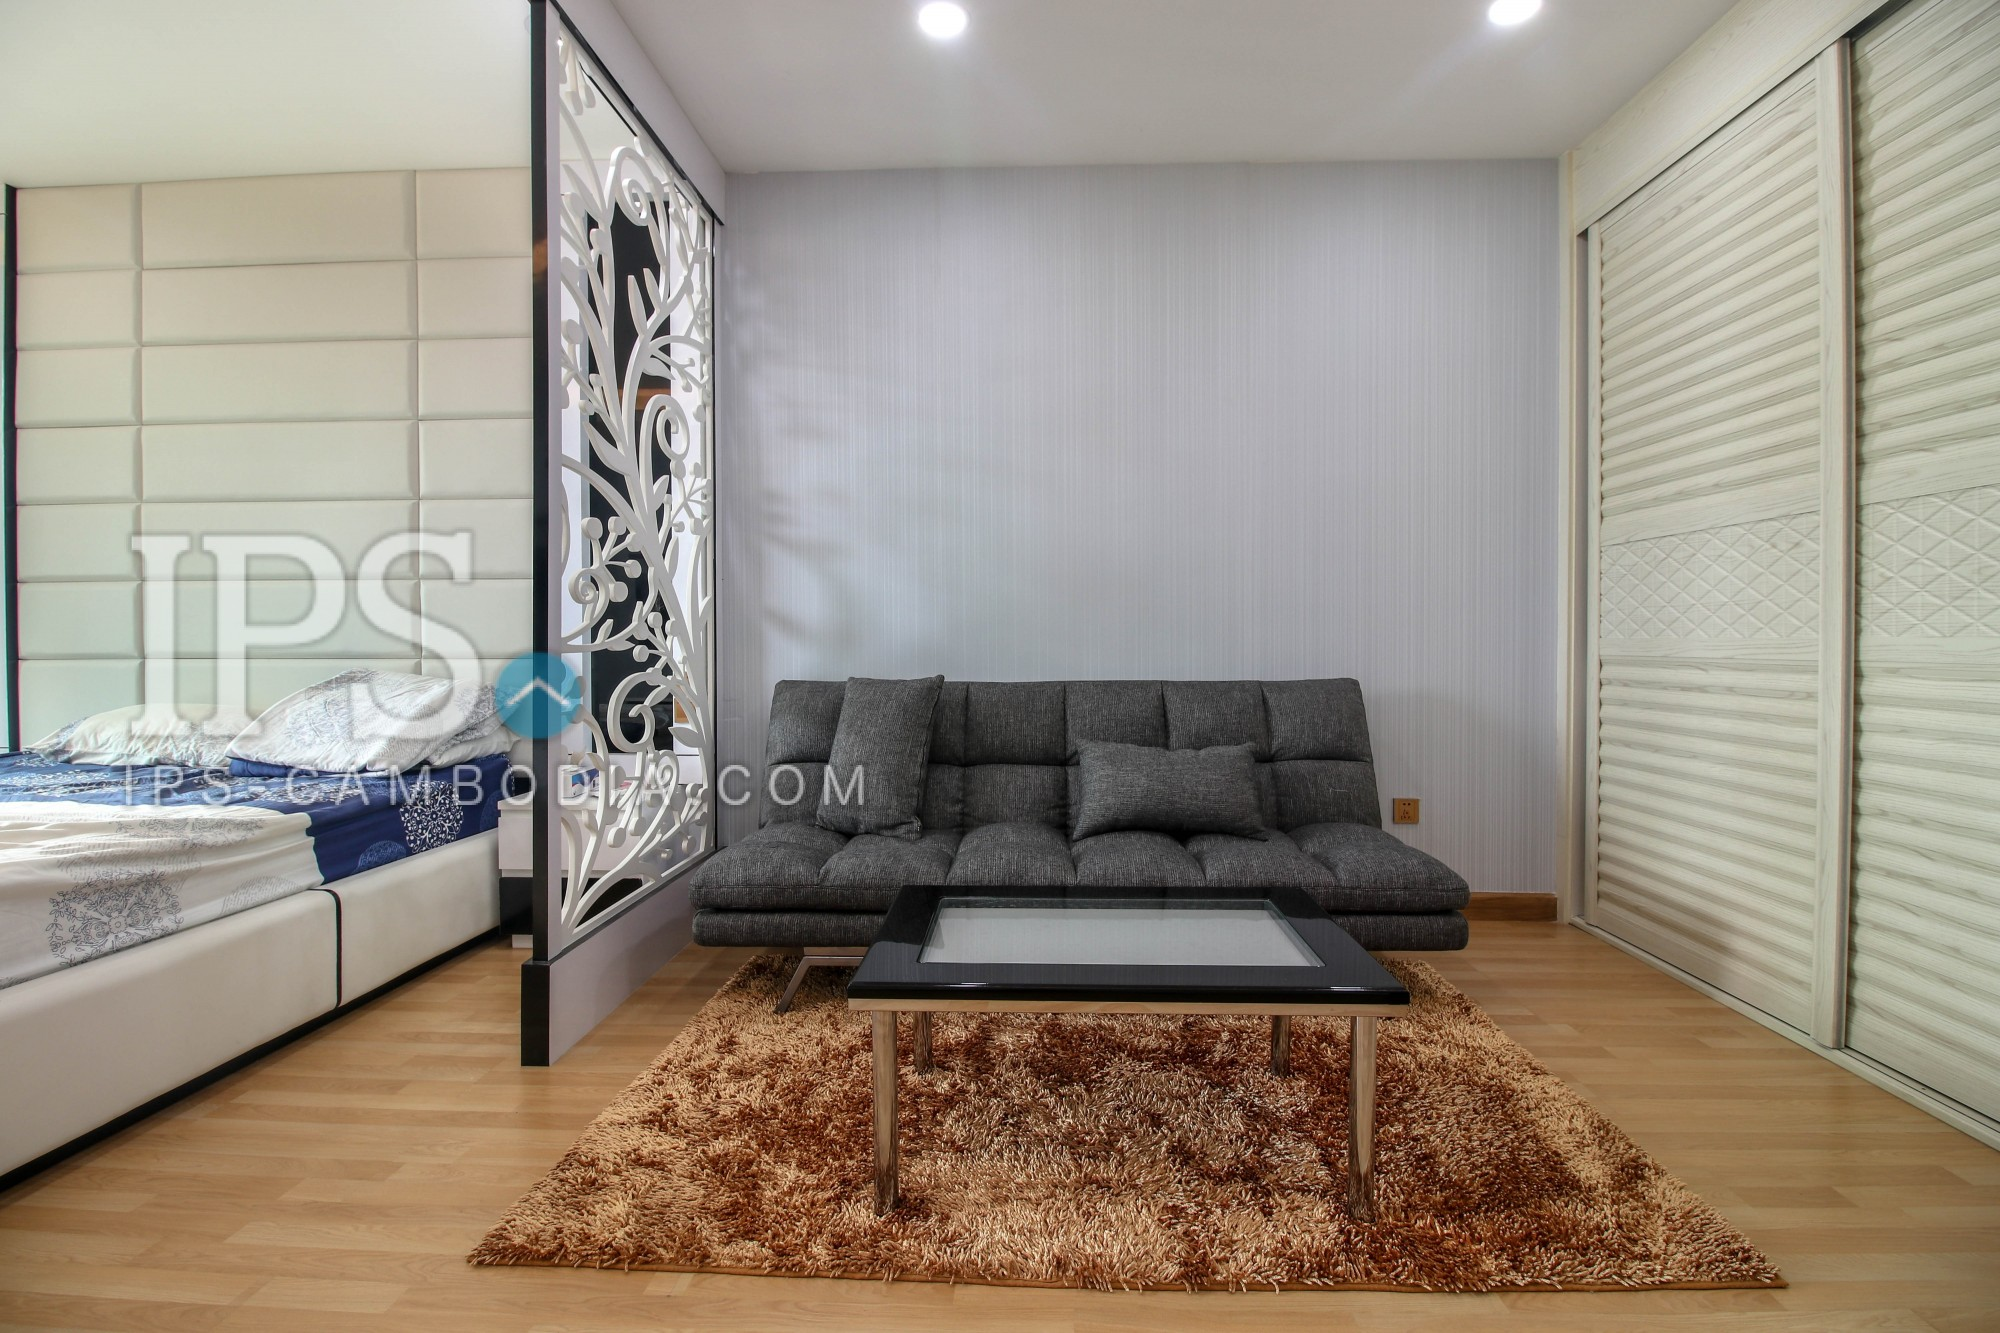 Studio Room For Sale in Olympia City